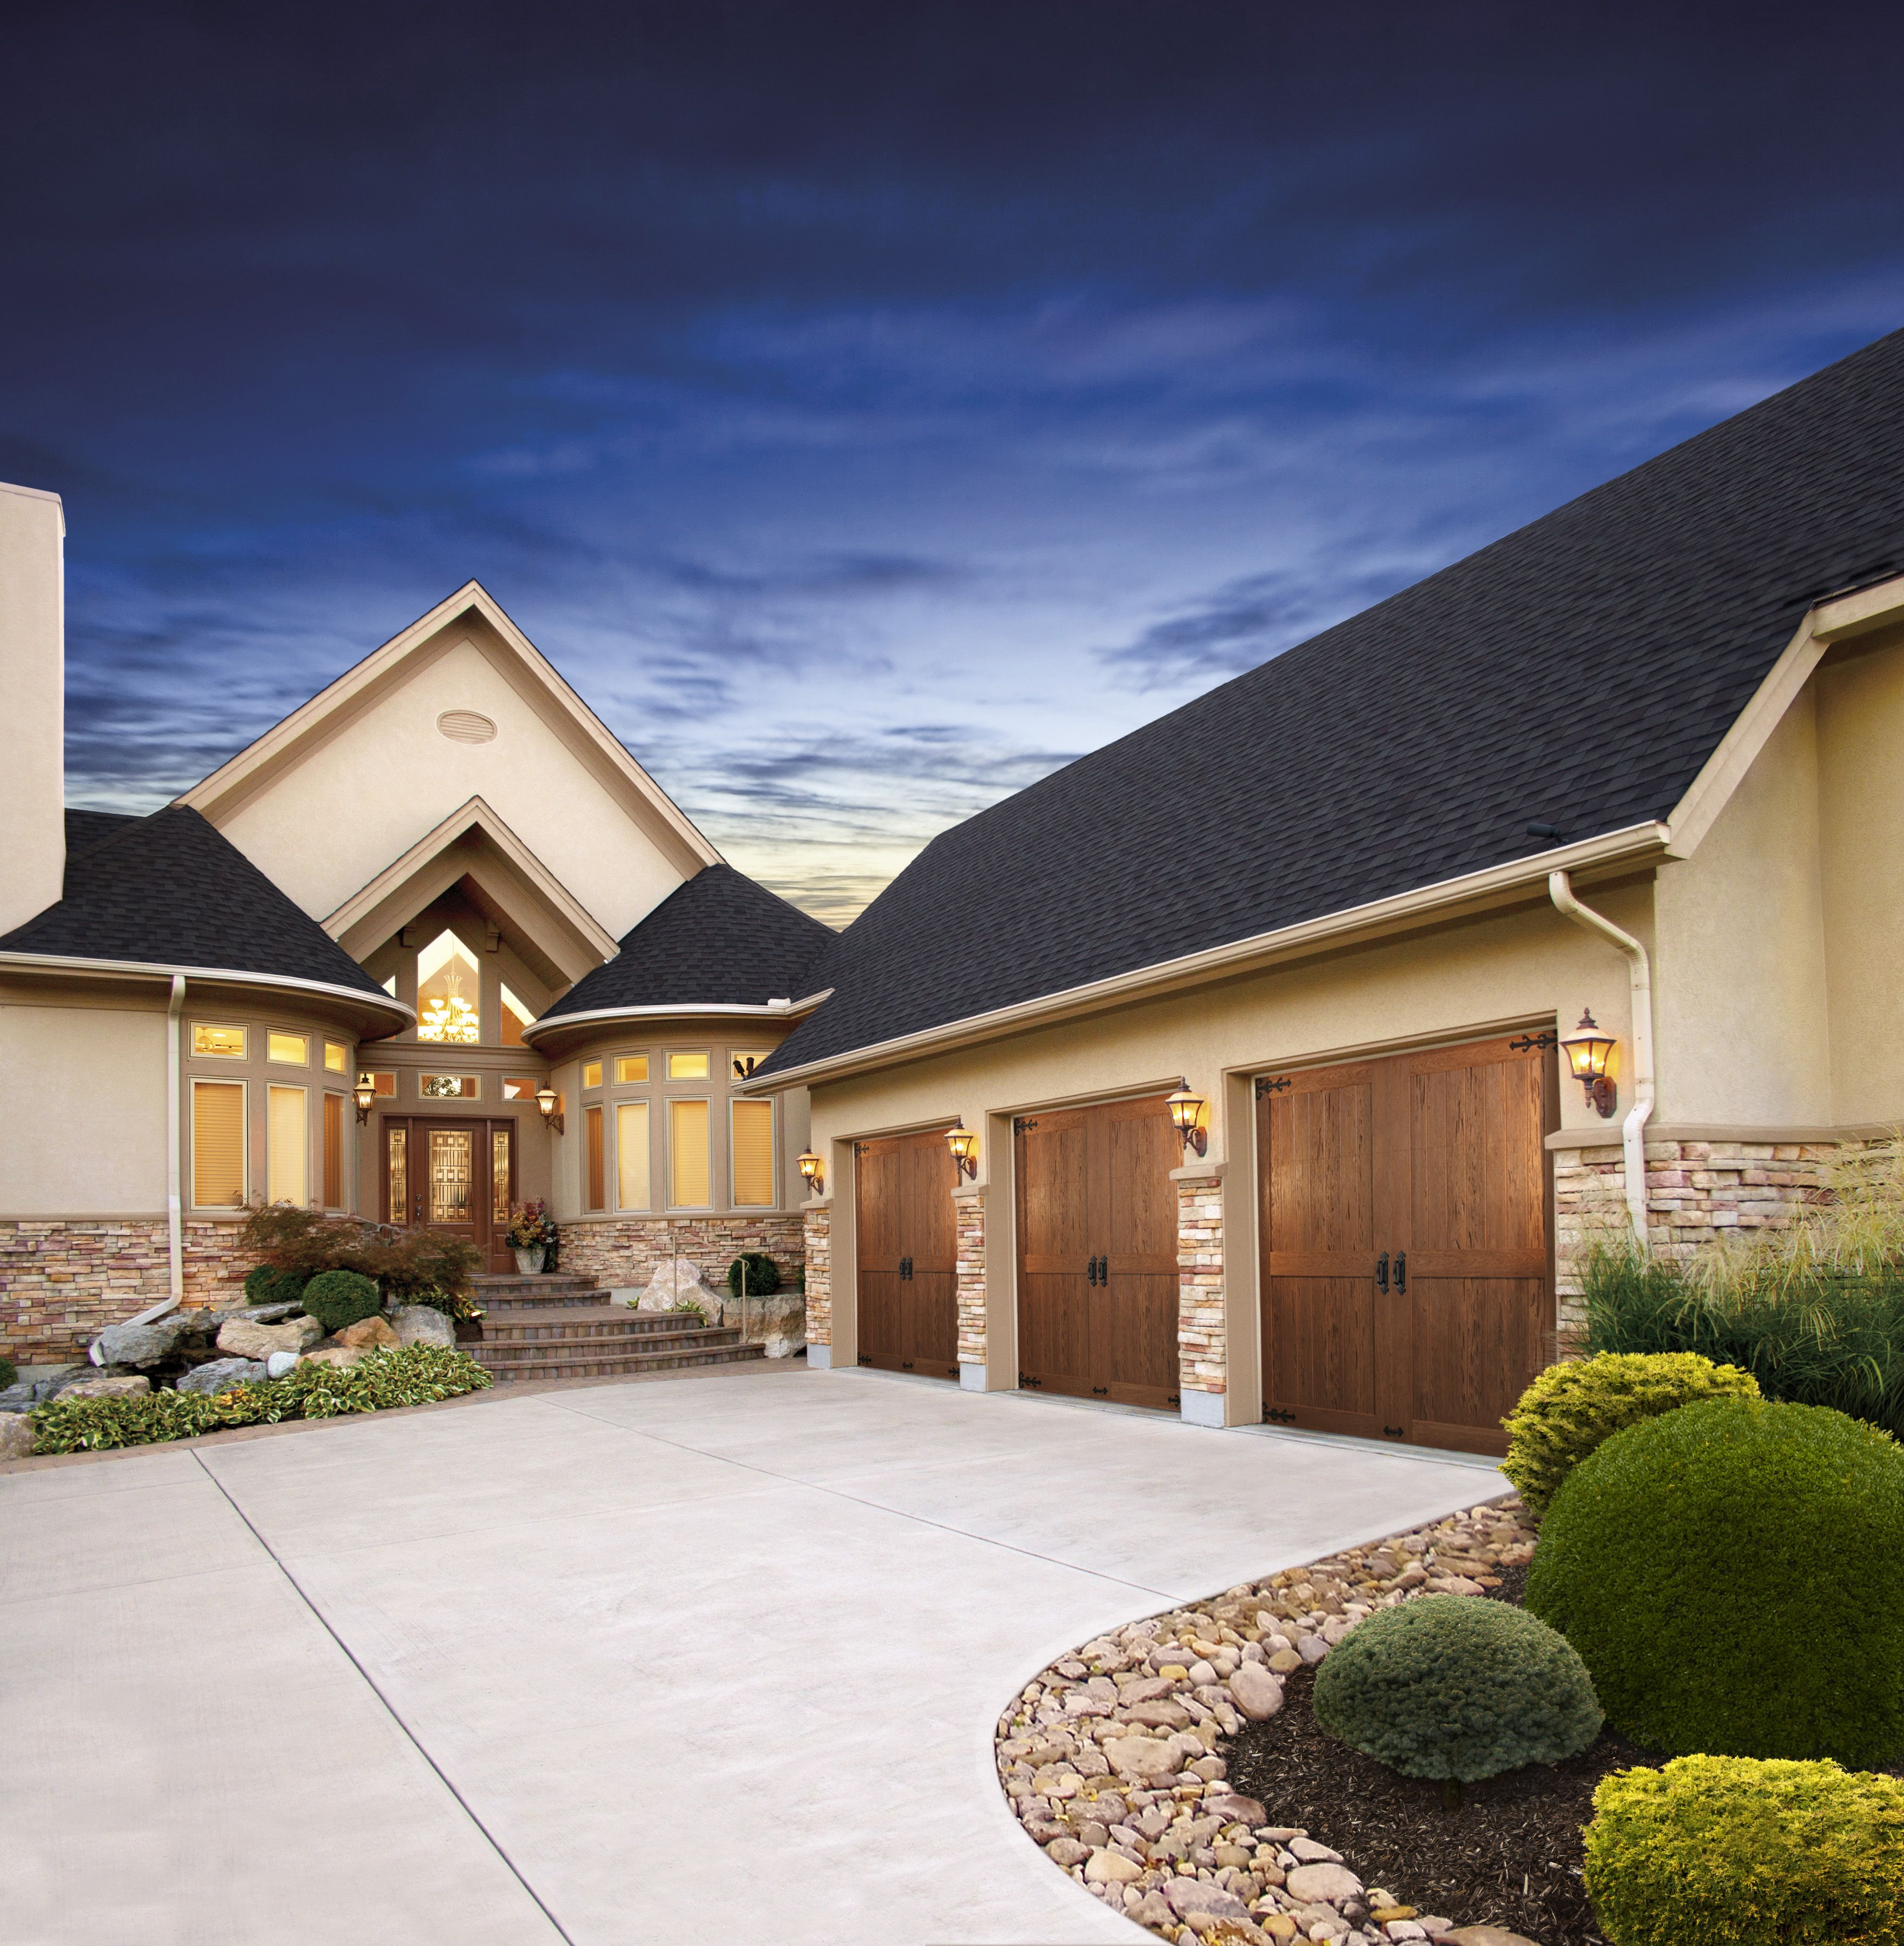 This Is The Canyon Ridge Line Of Clopay Doors Give Us A Call Between March 1 2013 And May 31 2013 To Find Out About O Dream House Architecture House Styles